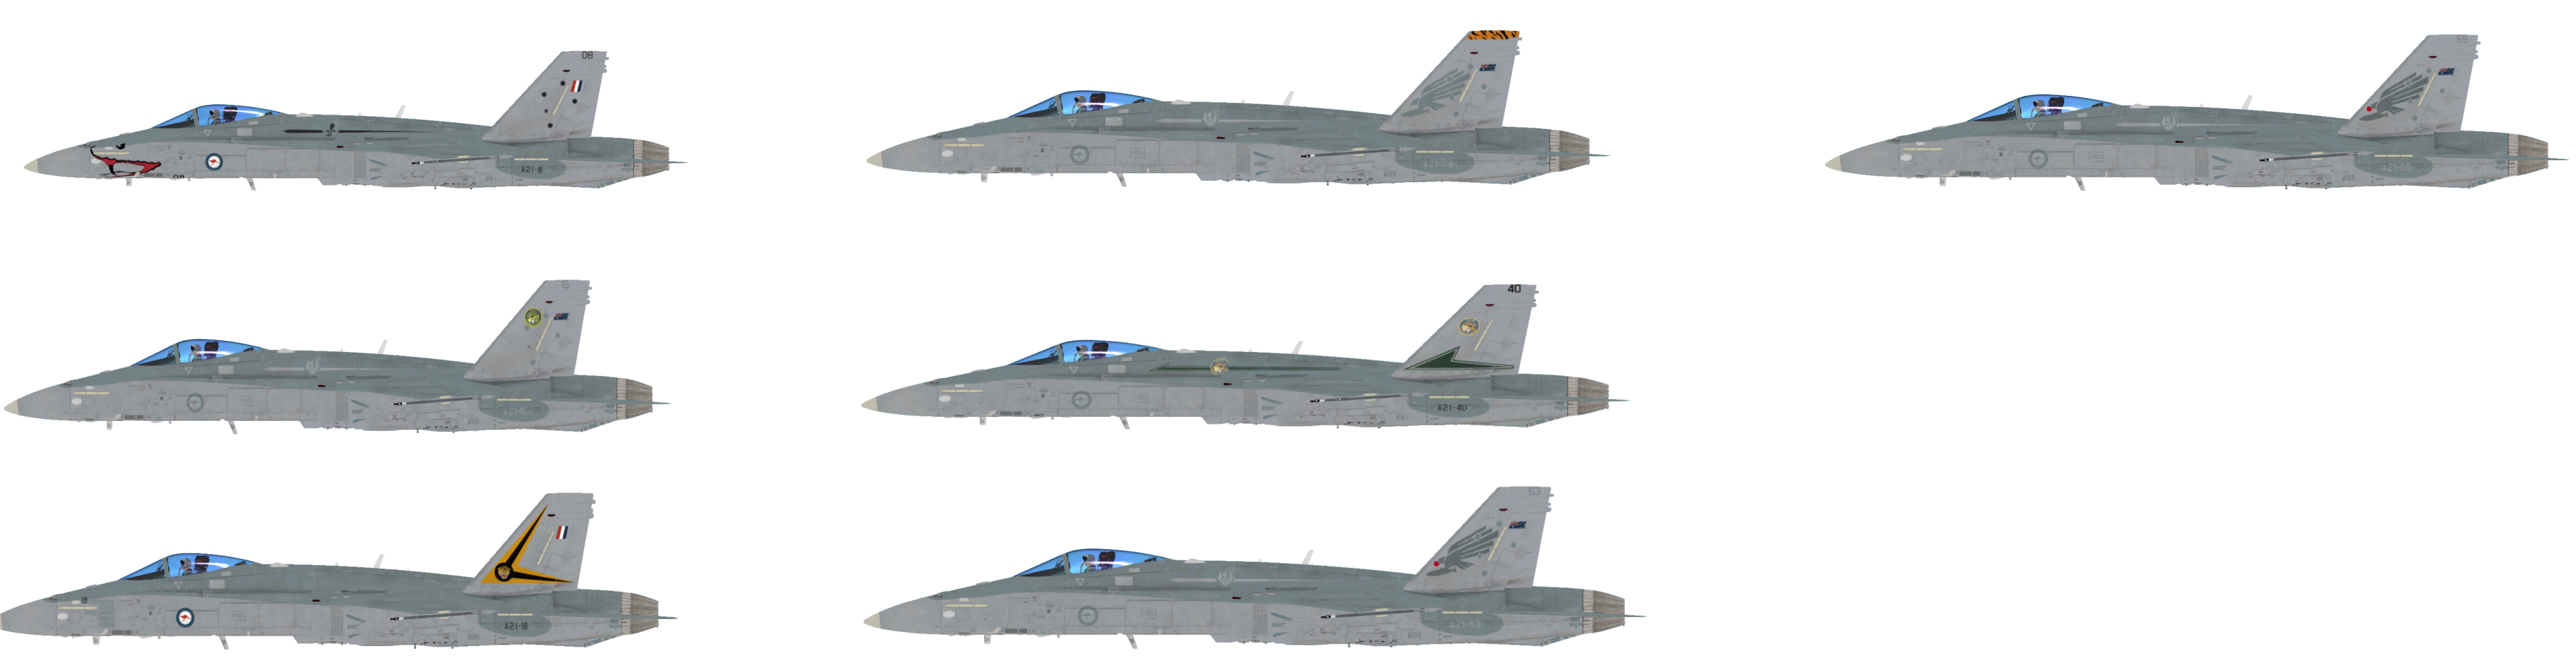 F/A-18C Royal Australian Air Force Pack Hornet Pack